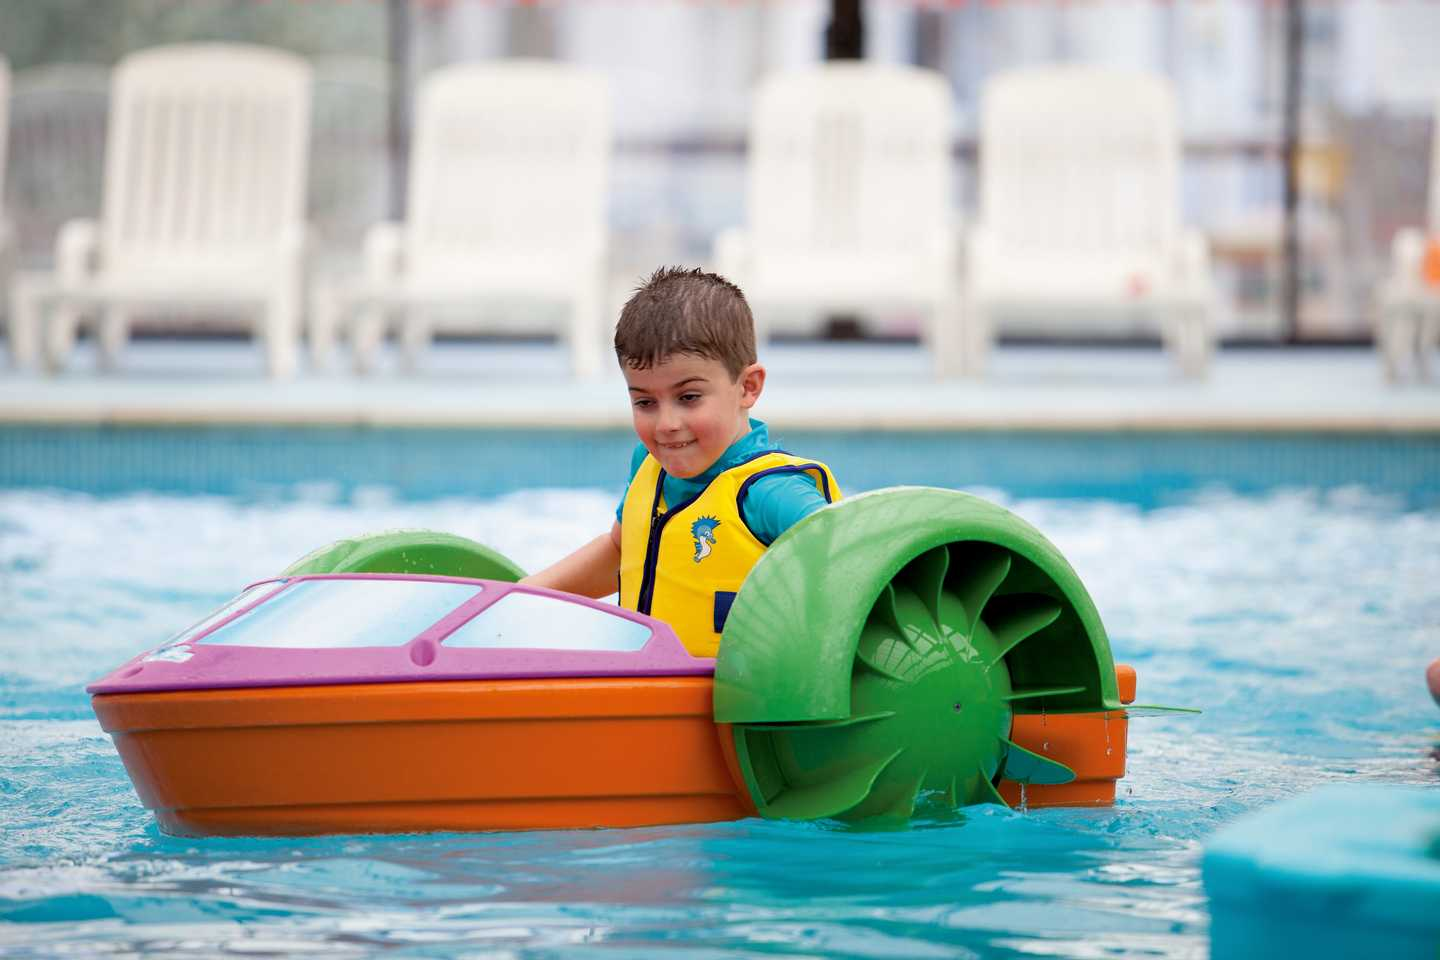 Child in a Turbo Paddler boat